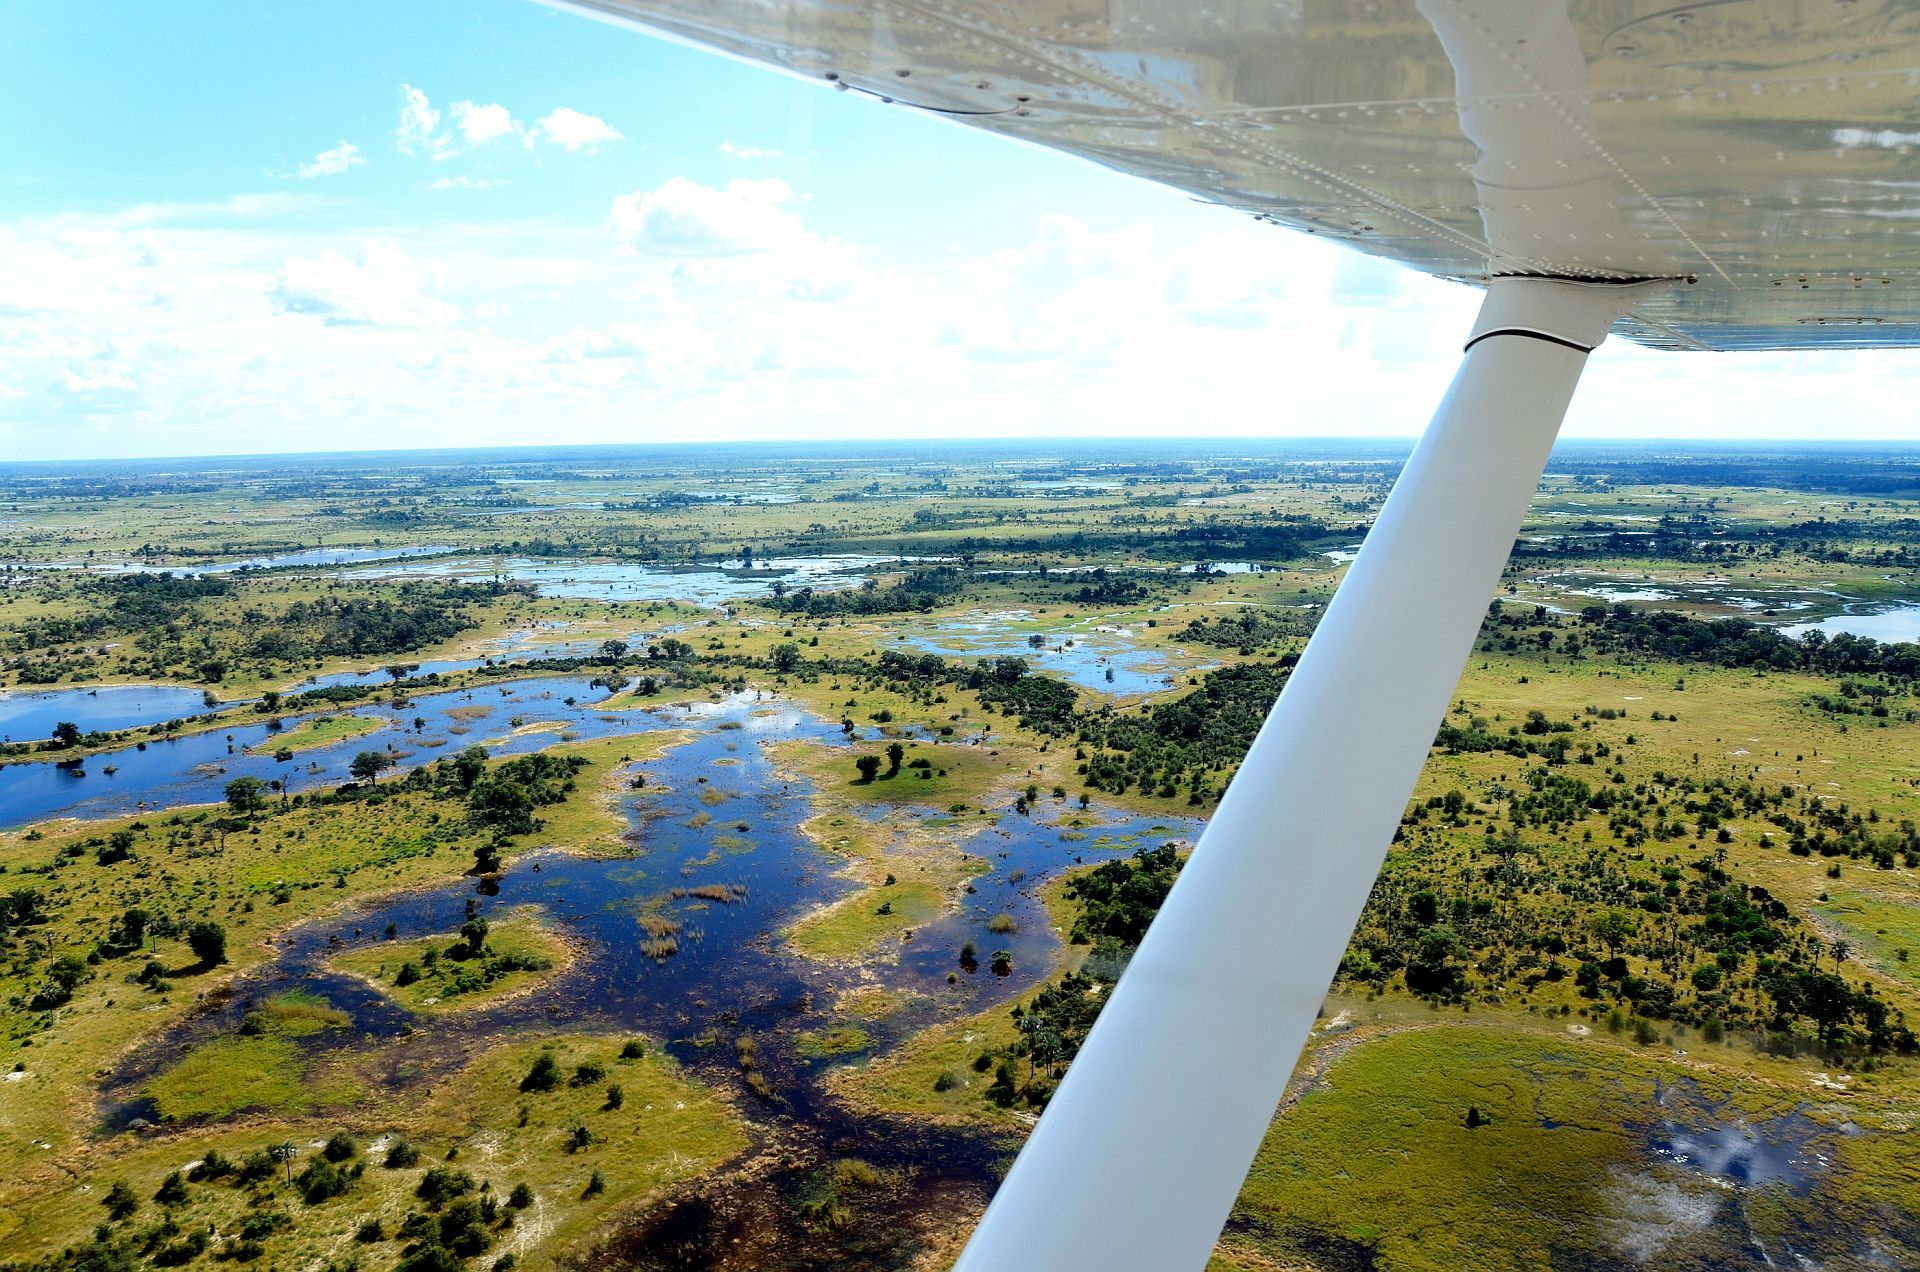 Day 6&7:OKAVANGO DELTA - This delta in north-west Botswana comprises permanent marshlands and seasonally flooded plains. It is one of the very few major interior delta systems that do not flow into a sea or ocean, with a wetland system that is almost intact.